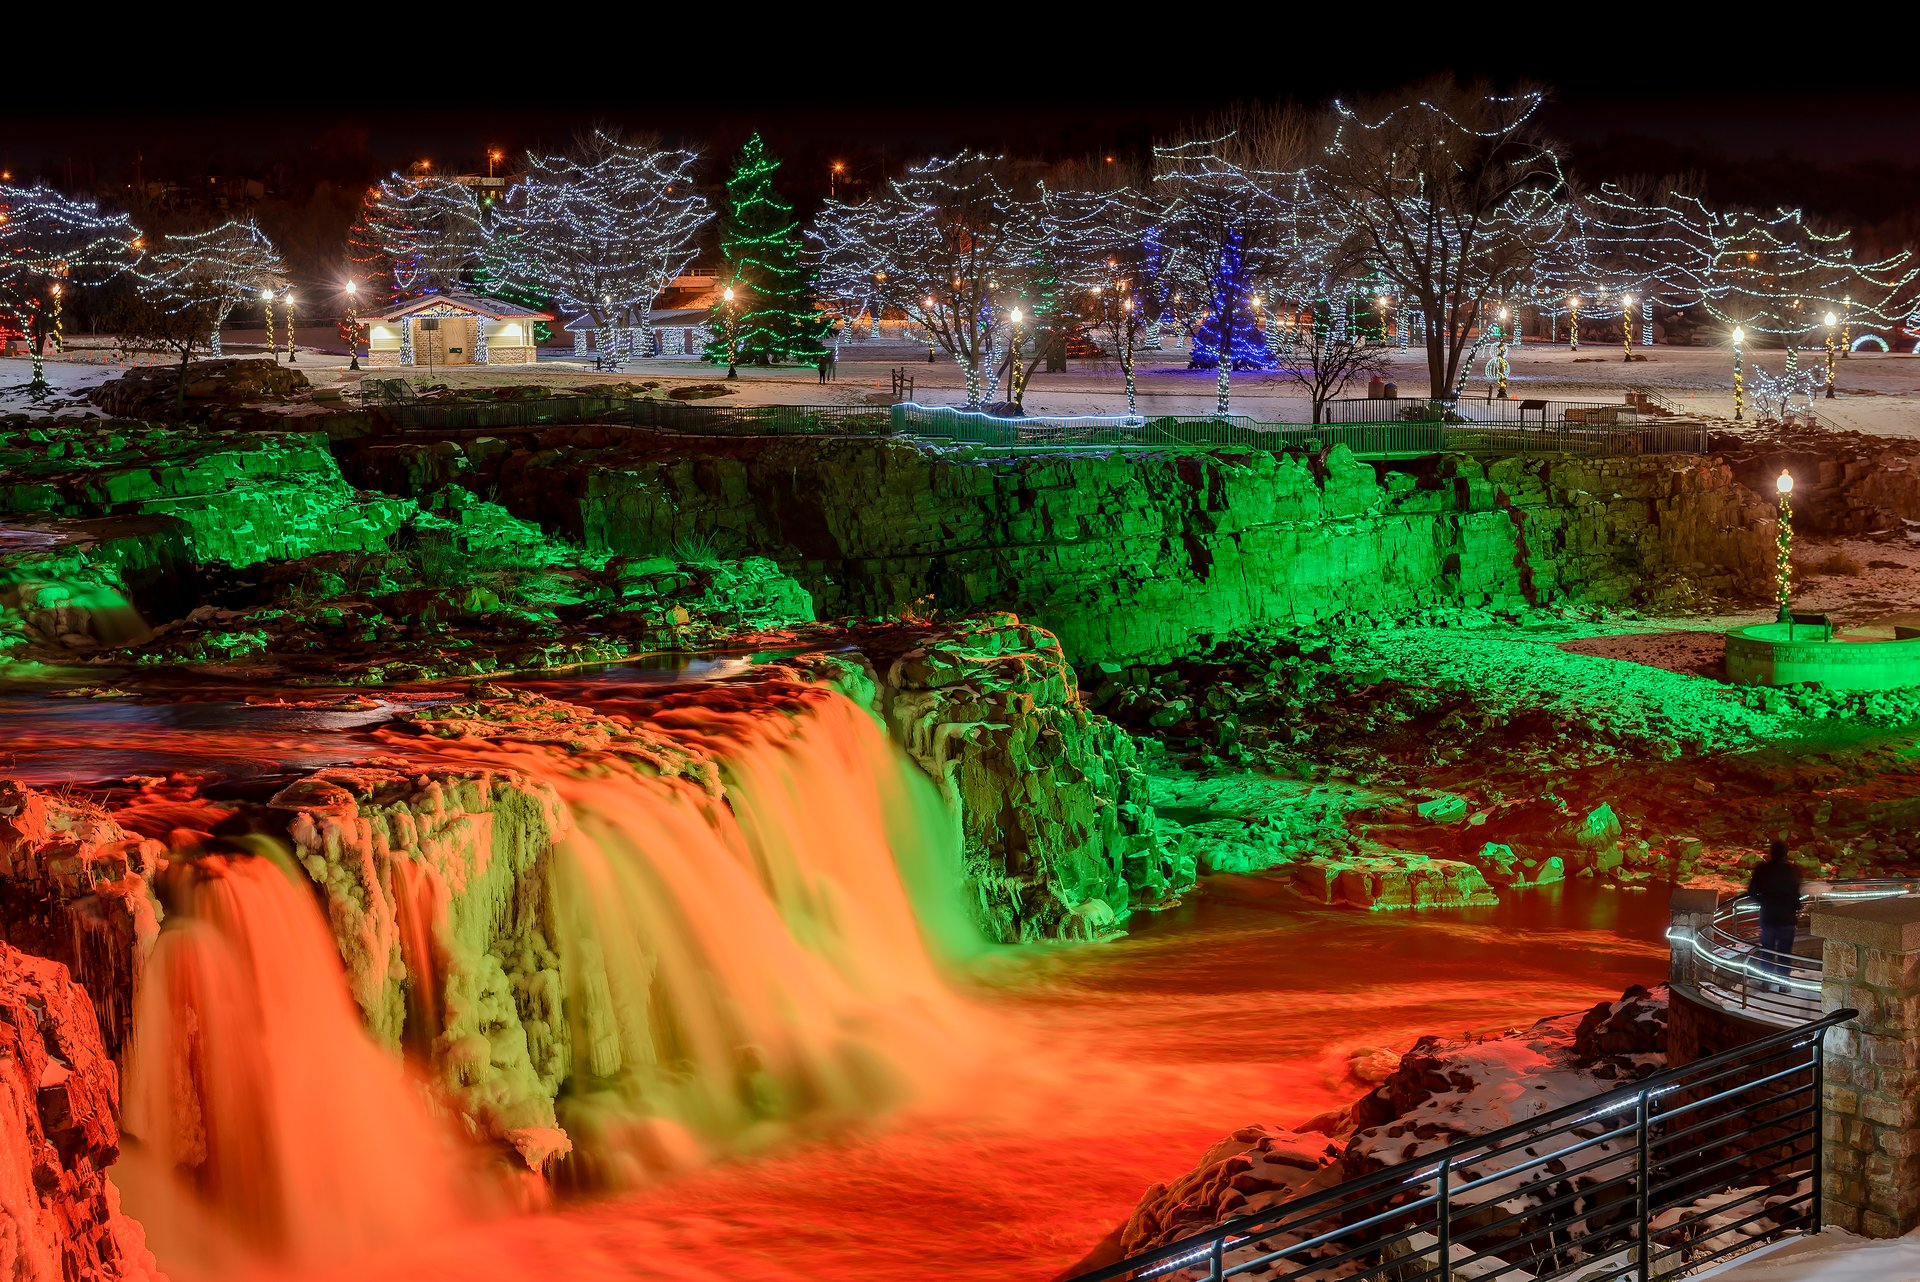 Best time to see Winter Wonderland at Falls Park in South Dakota 2020